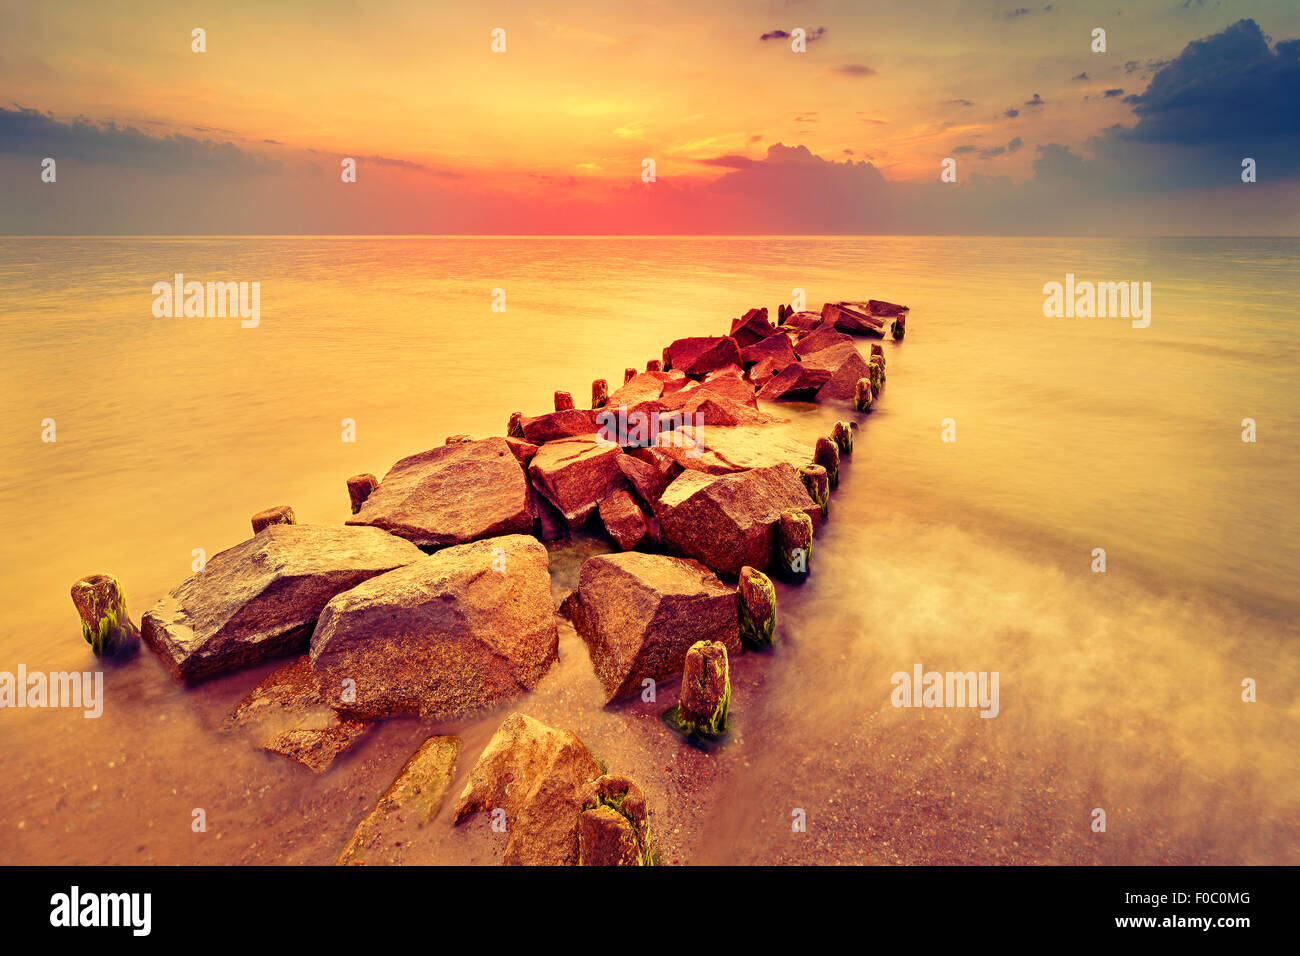 Beautiful sunset over beach and rocky pier. - Stock Image